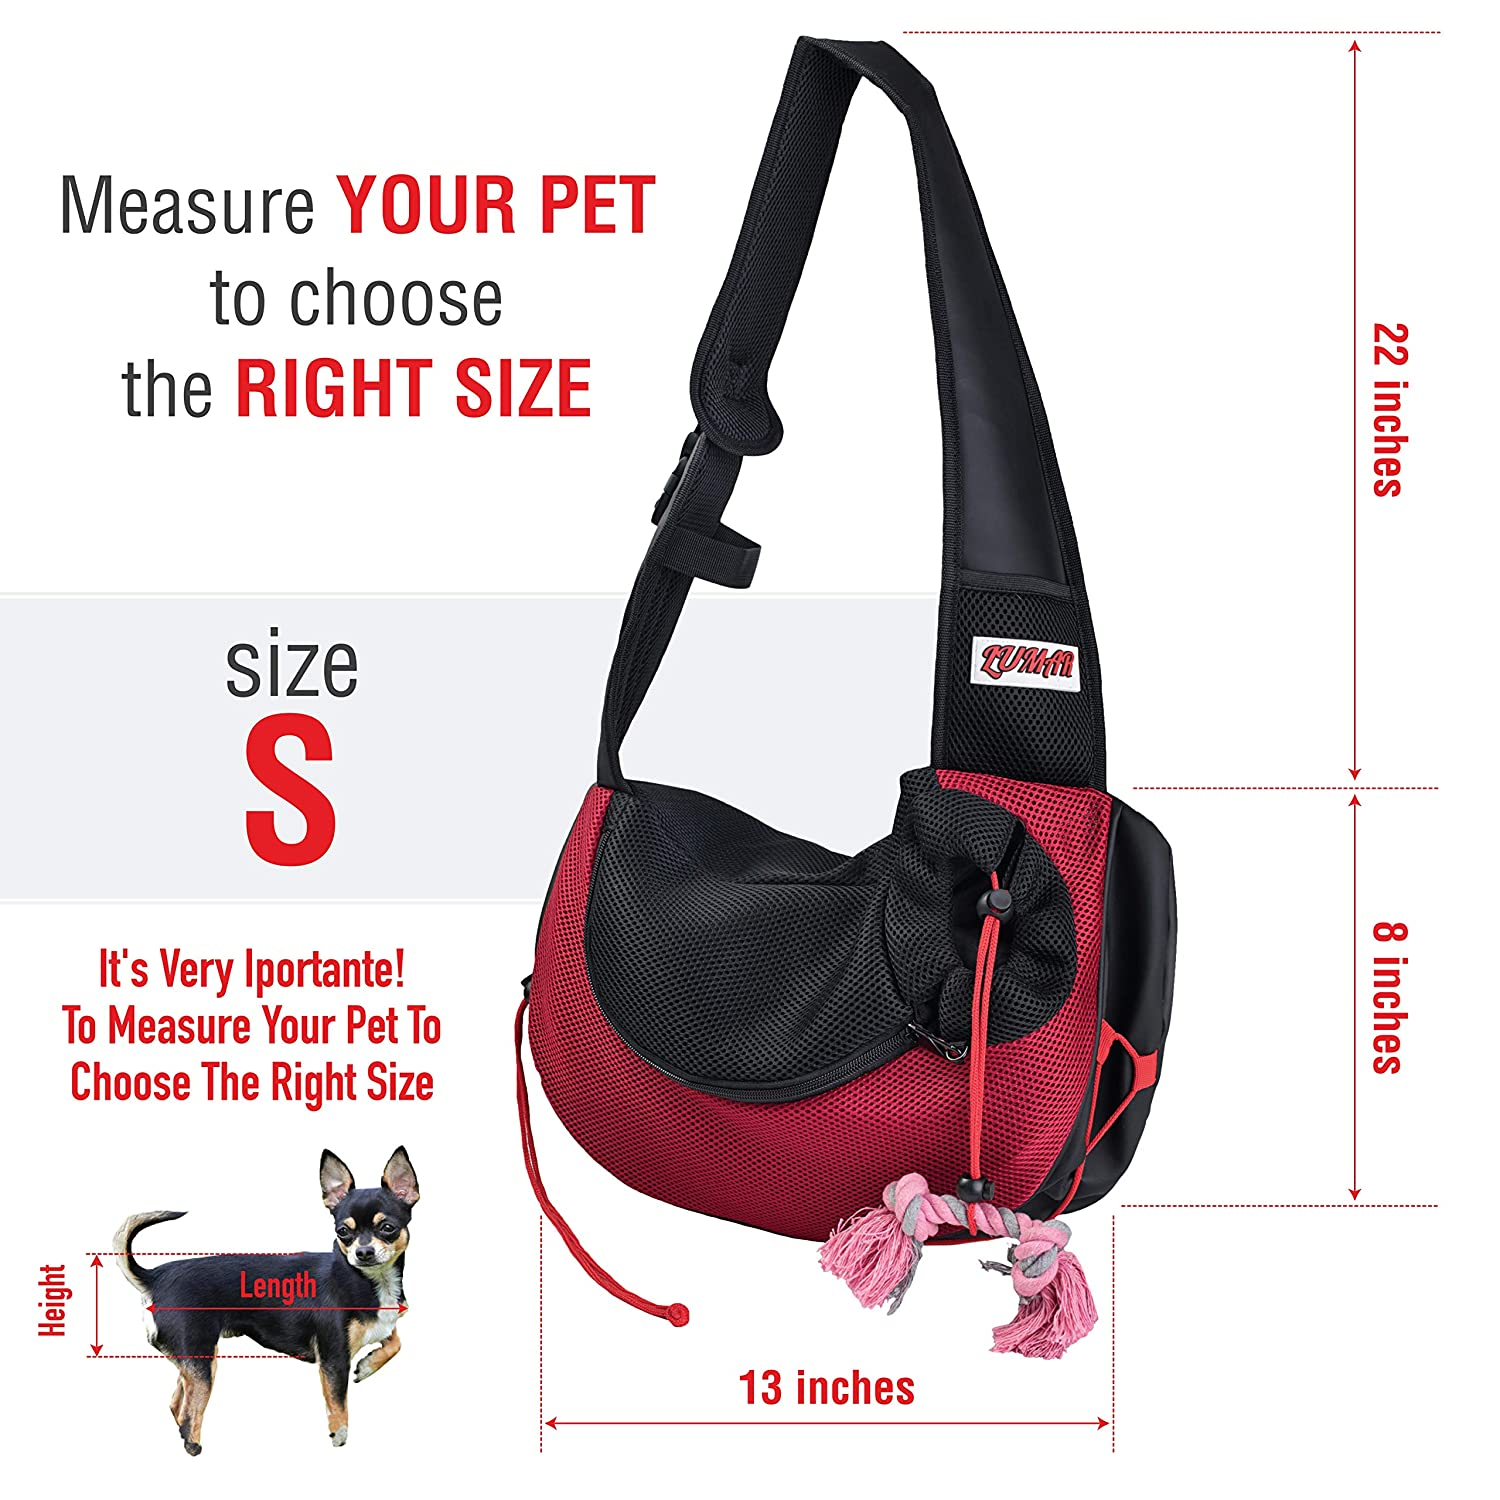 LUMAR Pet Sling Carrier for Dogs Two Size Adjustable S:1-5 Lbs M:6-13 Lbs The Only One Adapted Also for Car Seatbelt Connecting Safety a Toy for Traveling with The Small and Medium Dog